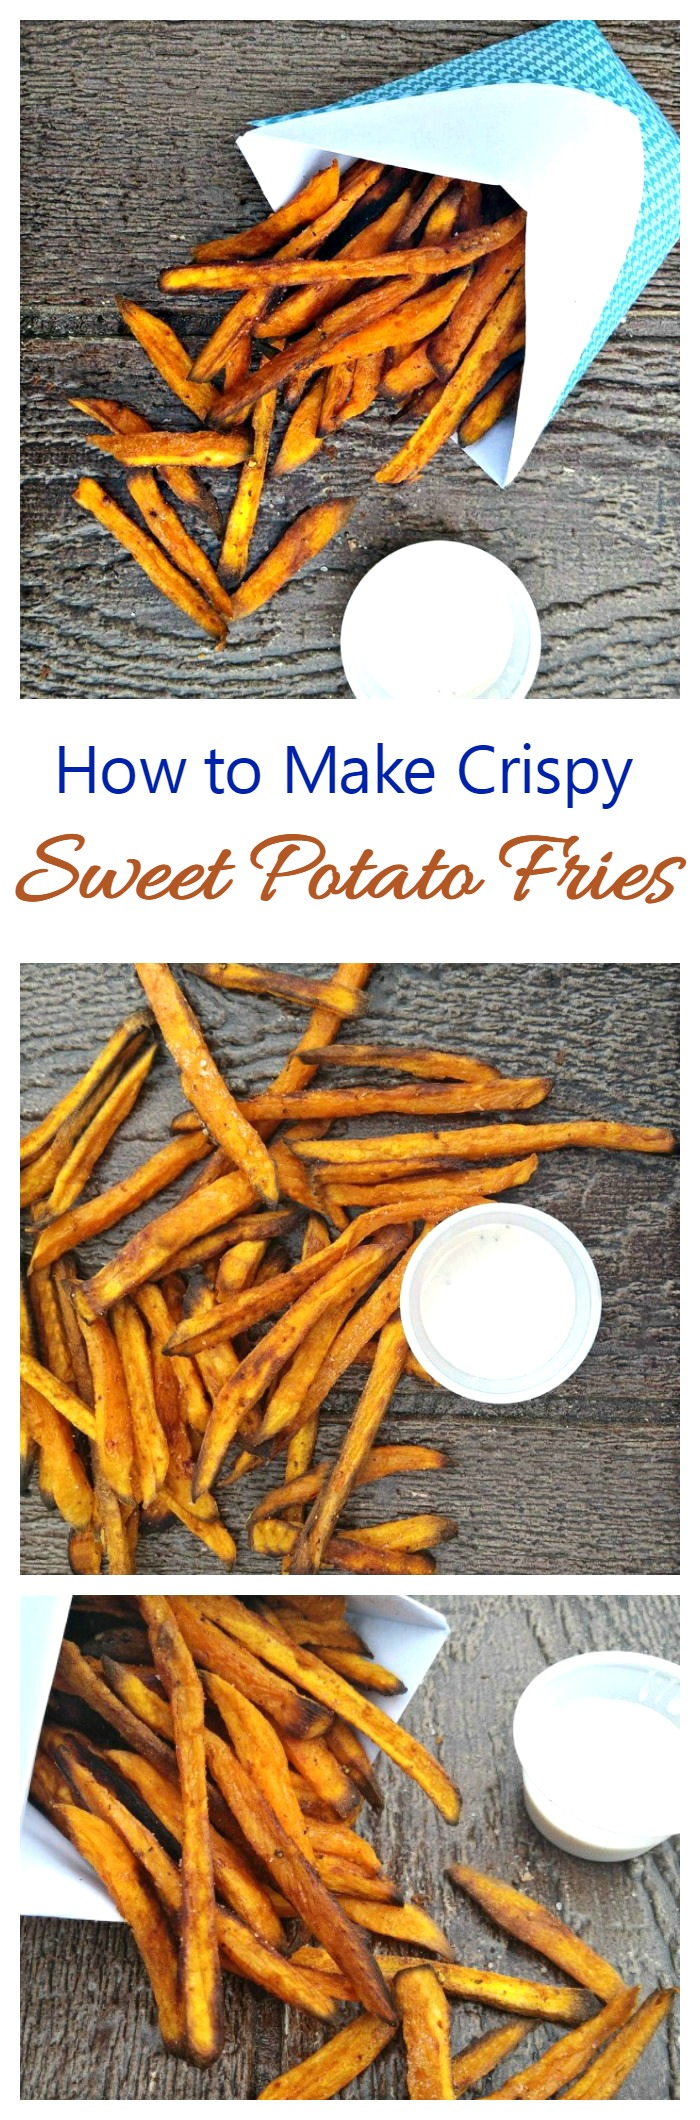 Sweet potatoes are a healthy comfort food but sometimes are soggy when cooked. See how to make them perfectly crispy, every time!